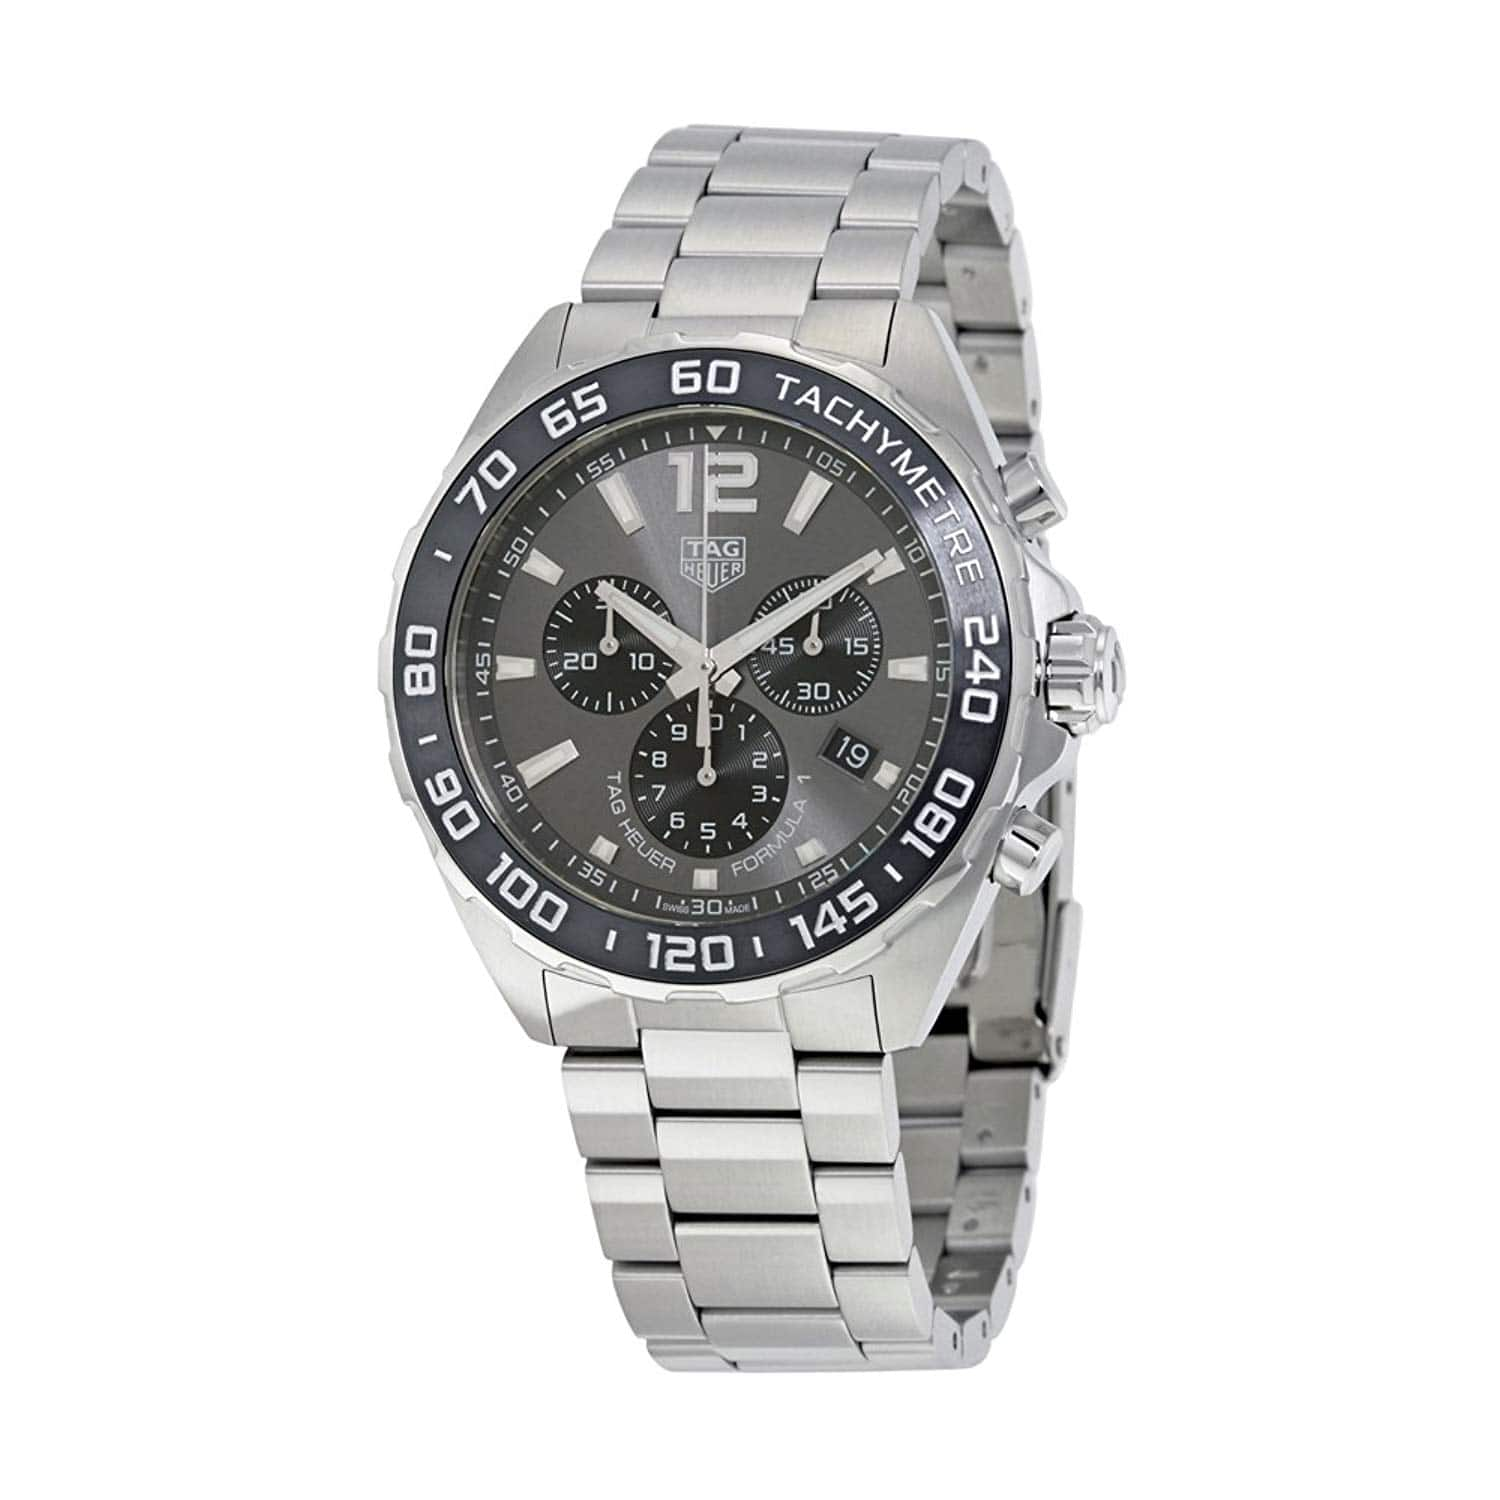 TAG HEUER Formula 1 Chronograph Anthracite Dial Men's Watch - $1049 shipped